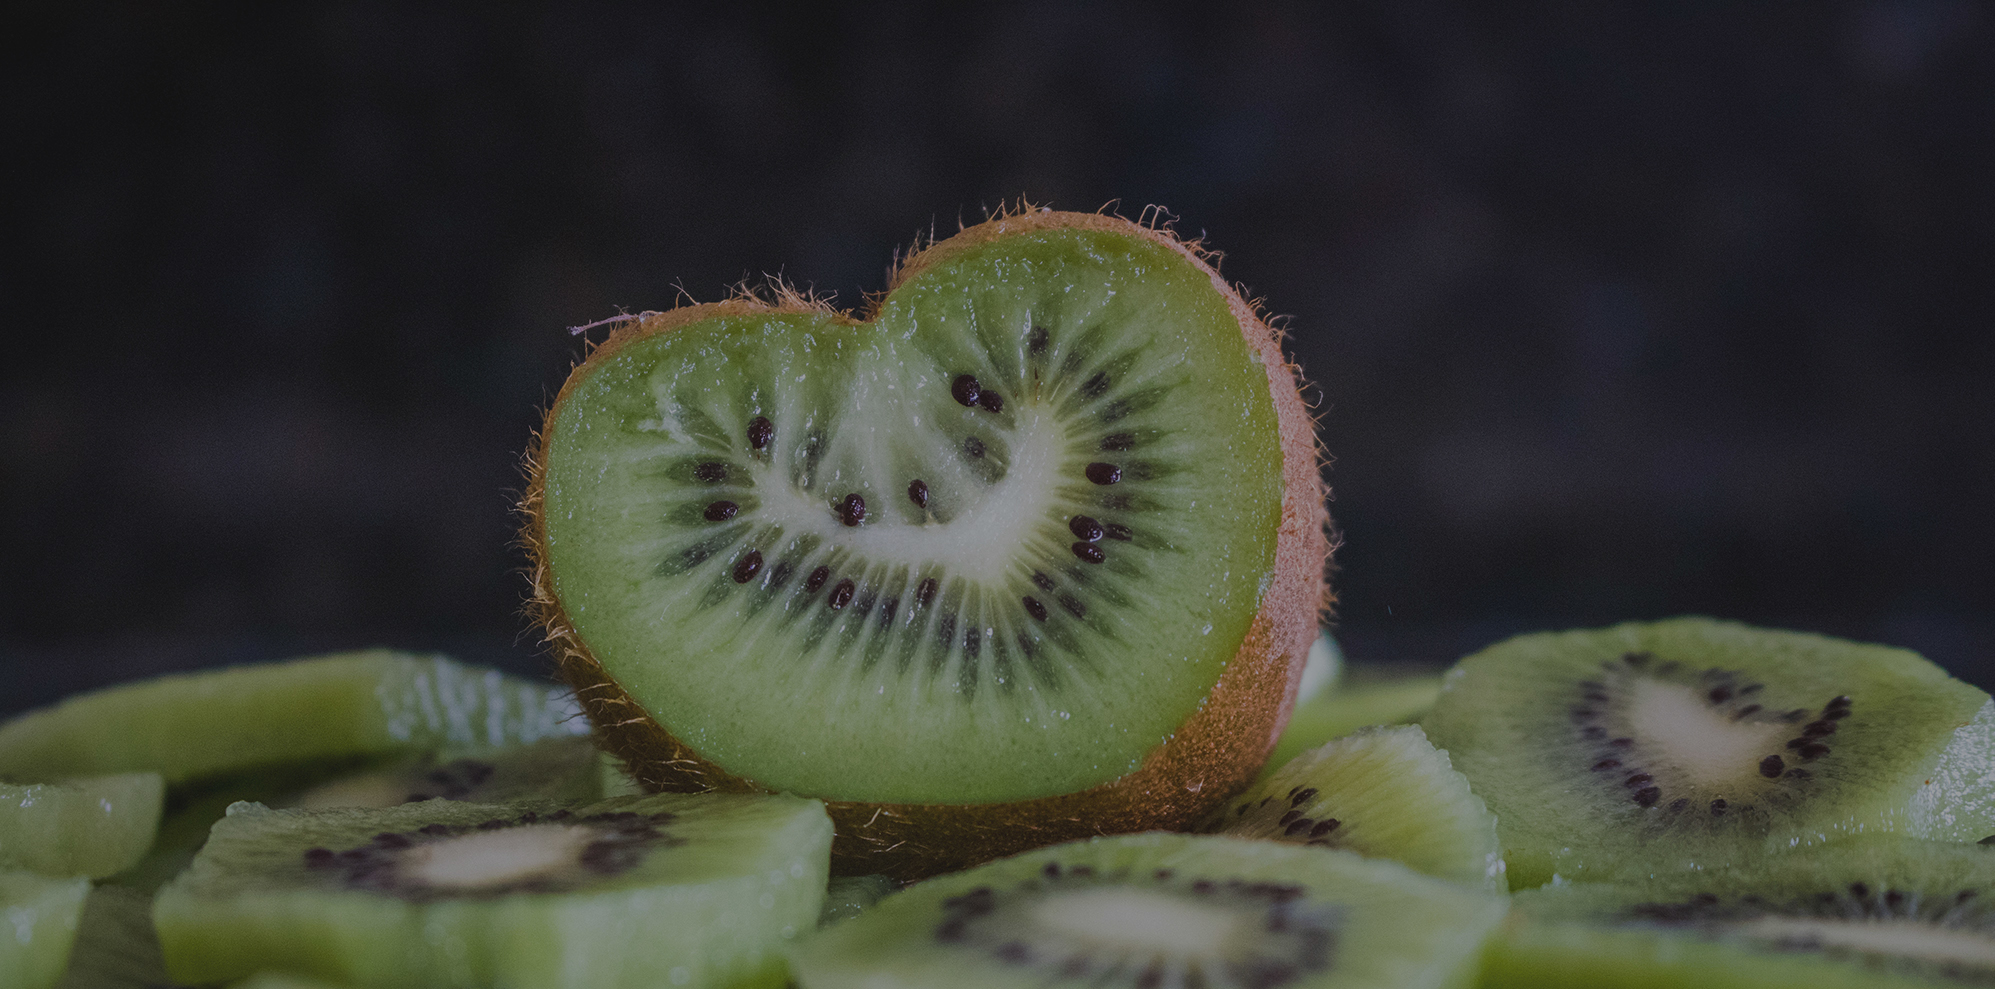 Why IBS researchers are talking about kiwifruit